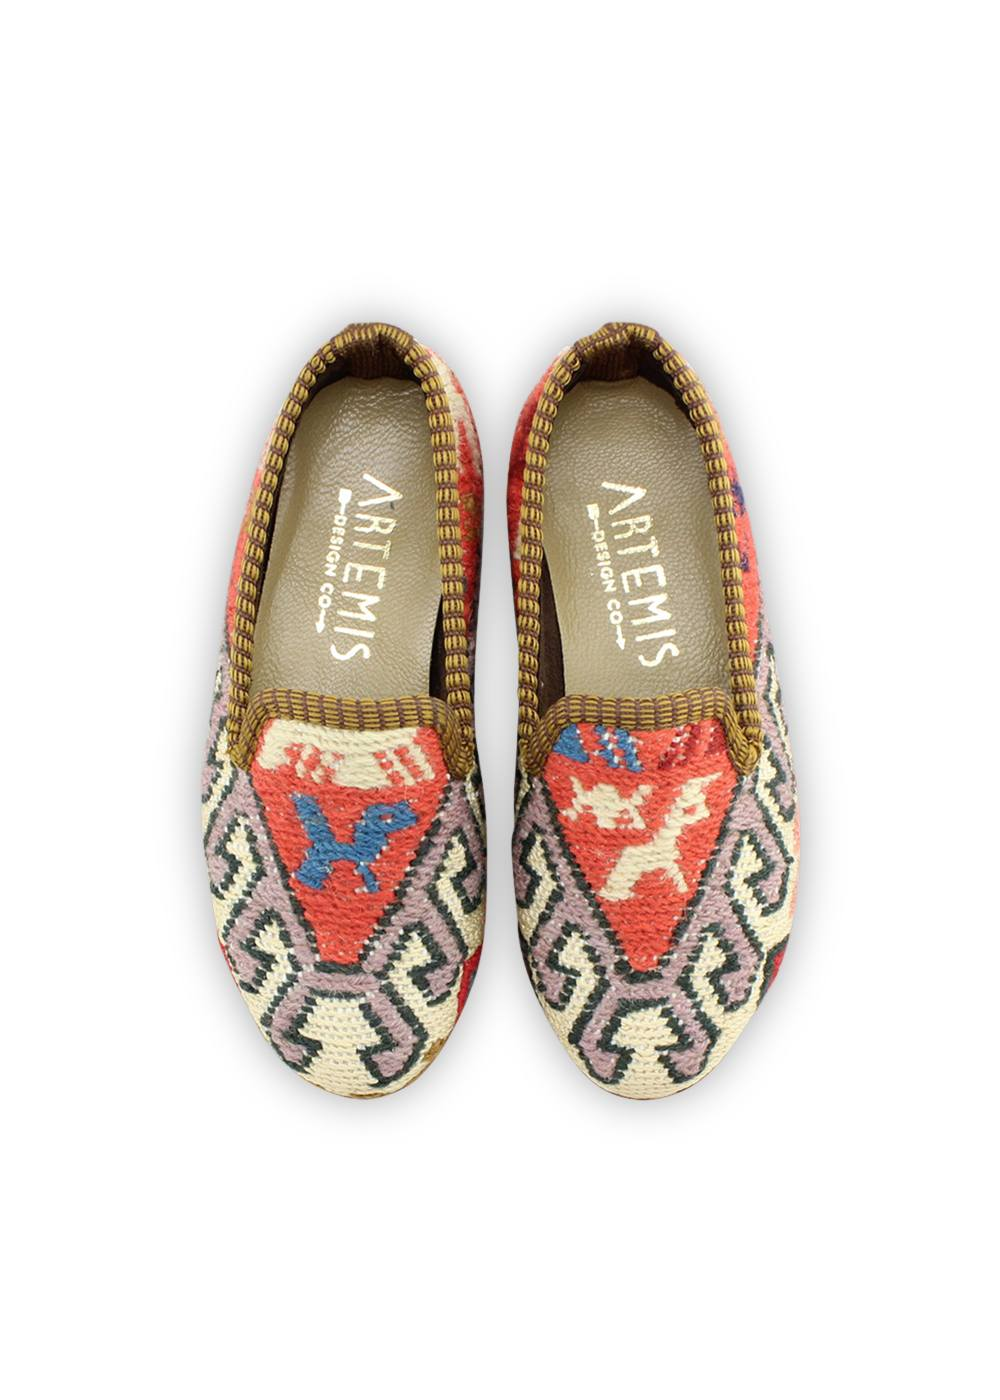 Archived Children's Shoes - Children's Sumak Kilim Loafers - Size 28